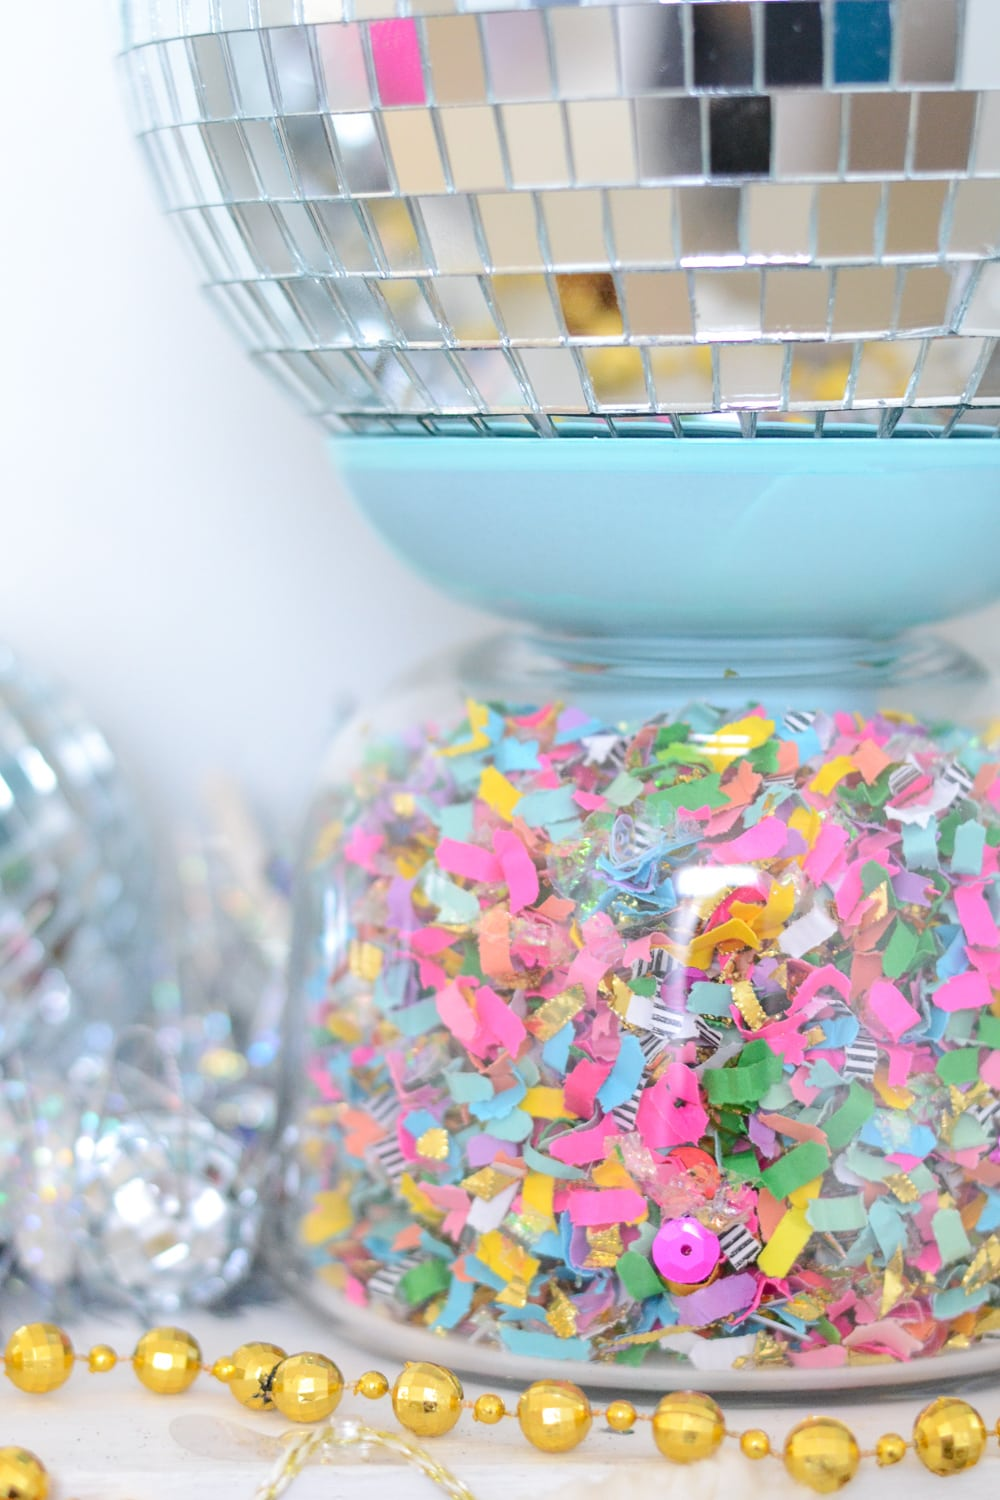 Revamp these IKEA vase candle holders by spray painting in bold colors and filling with confetti!